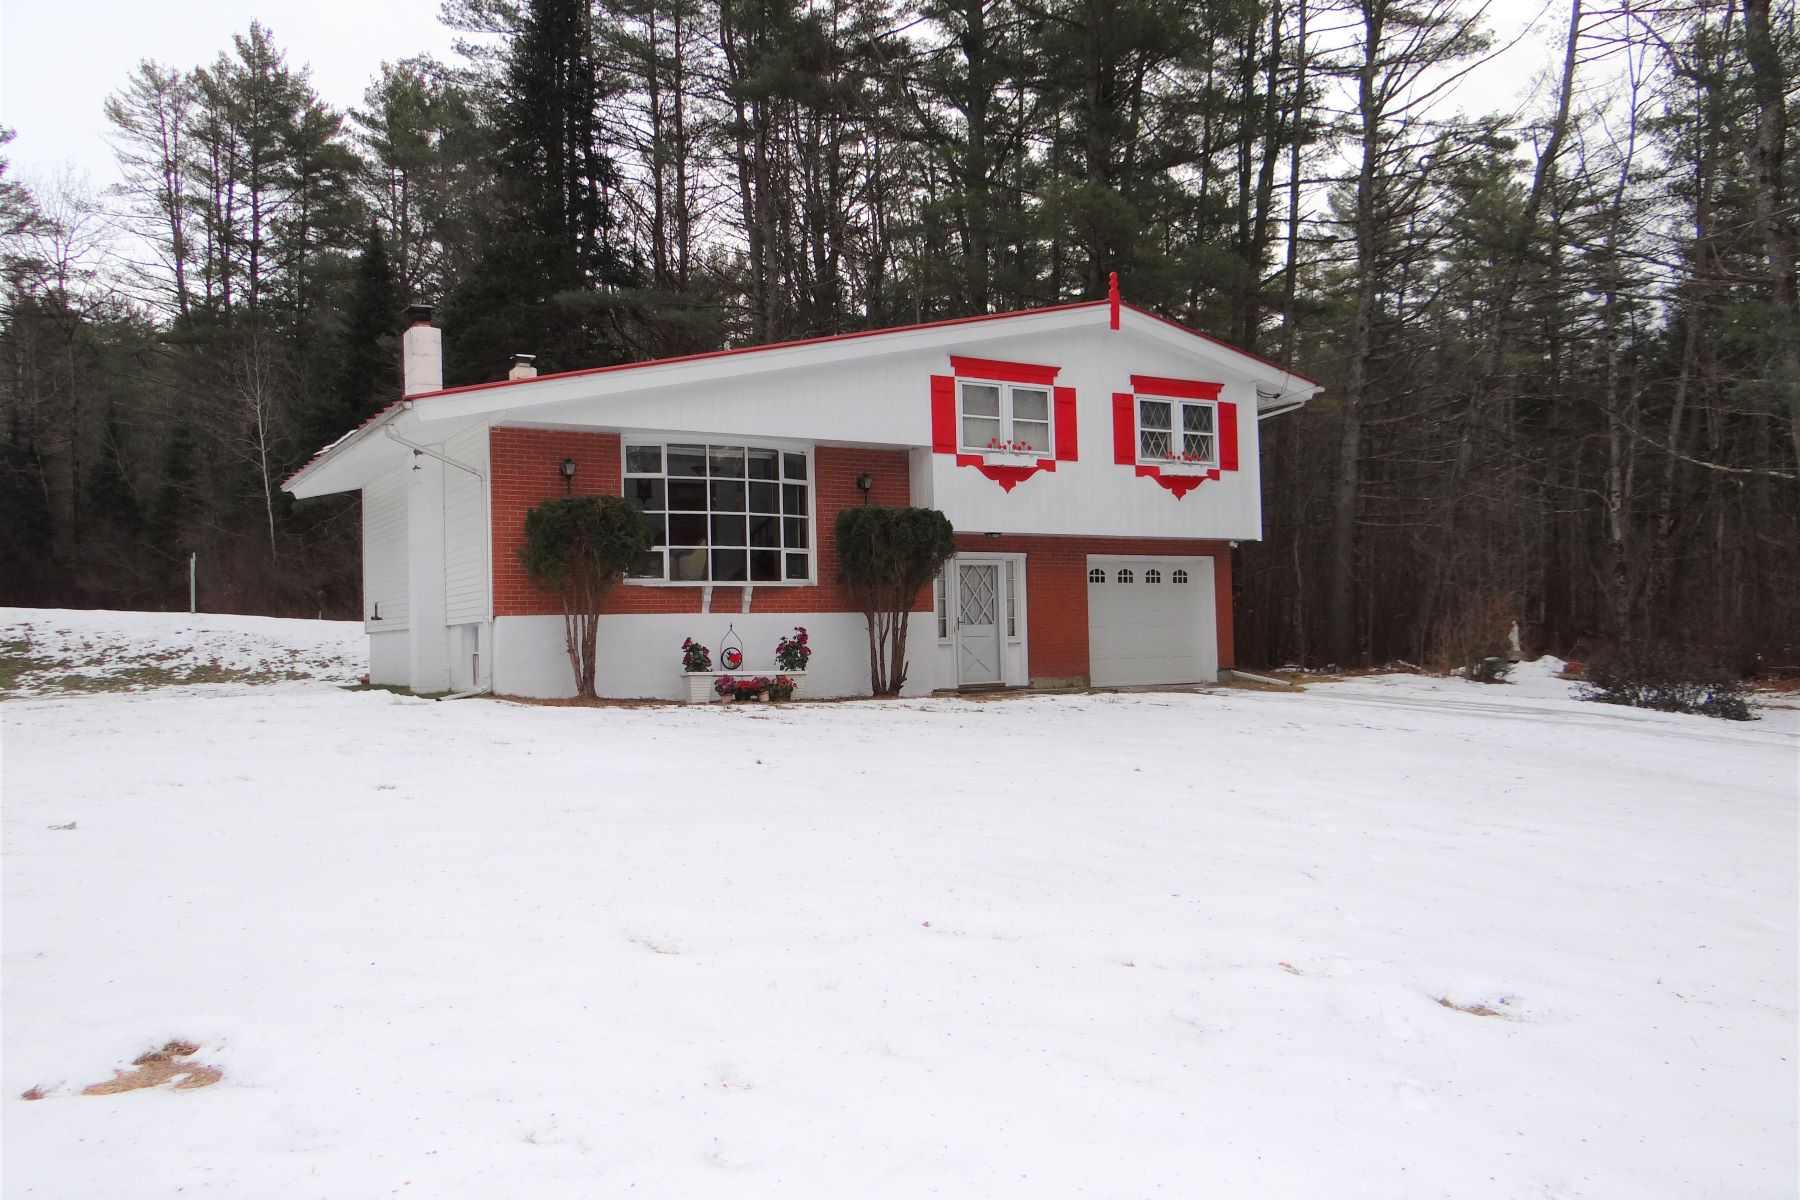 Single Family Homes for Sale at 147 Slayton Hill Road, Lebanon 147 Slayton Hill Road Lebanon, New Hampshire 03766 United States